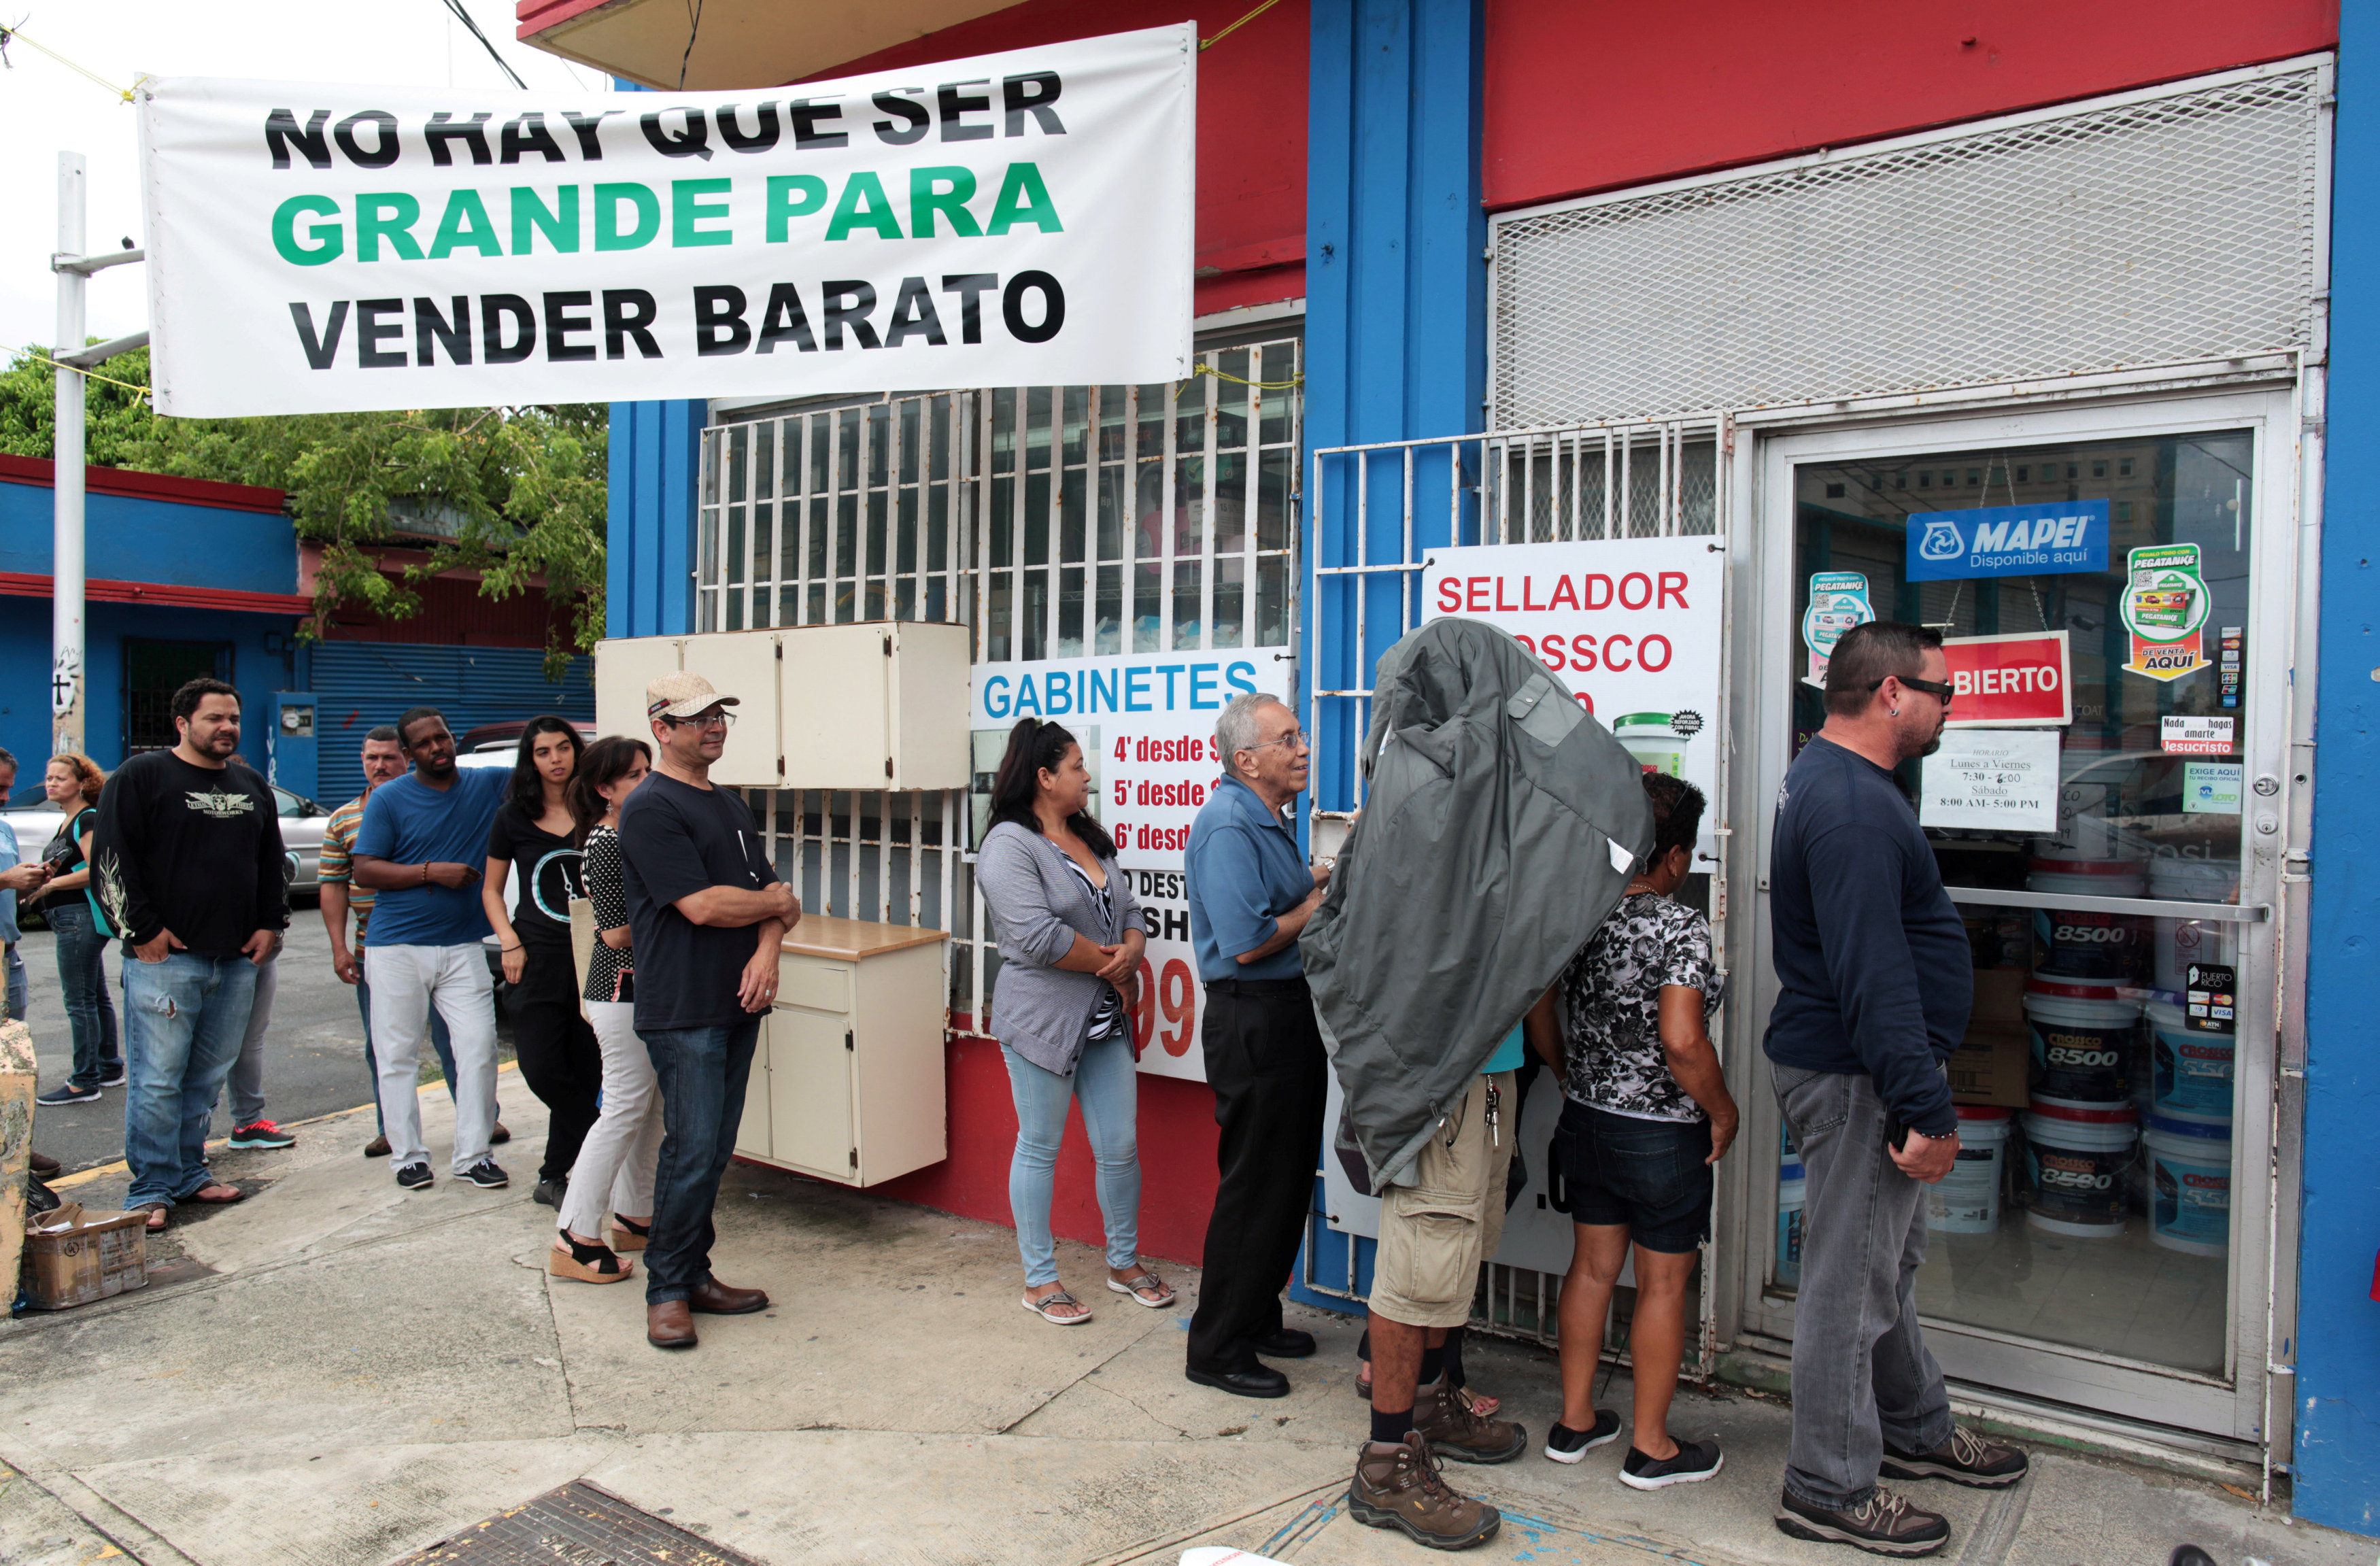 People stand in line outside a hardware store as they prepare for Hurricane Irma, in Bayamon, Puerto Rico on Sept. 5, 2017. (REUTERS/Alvin Baez)